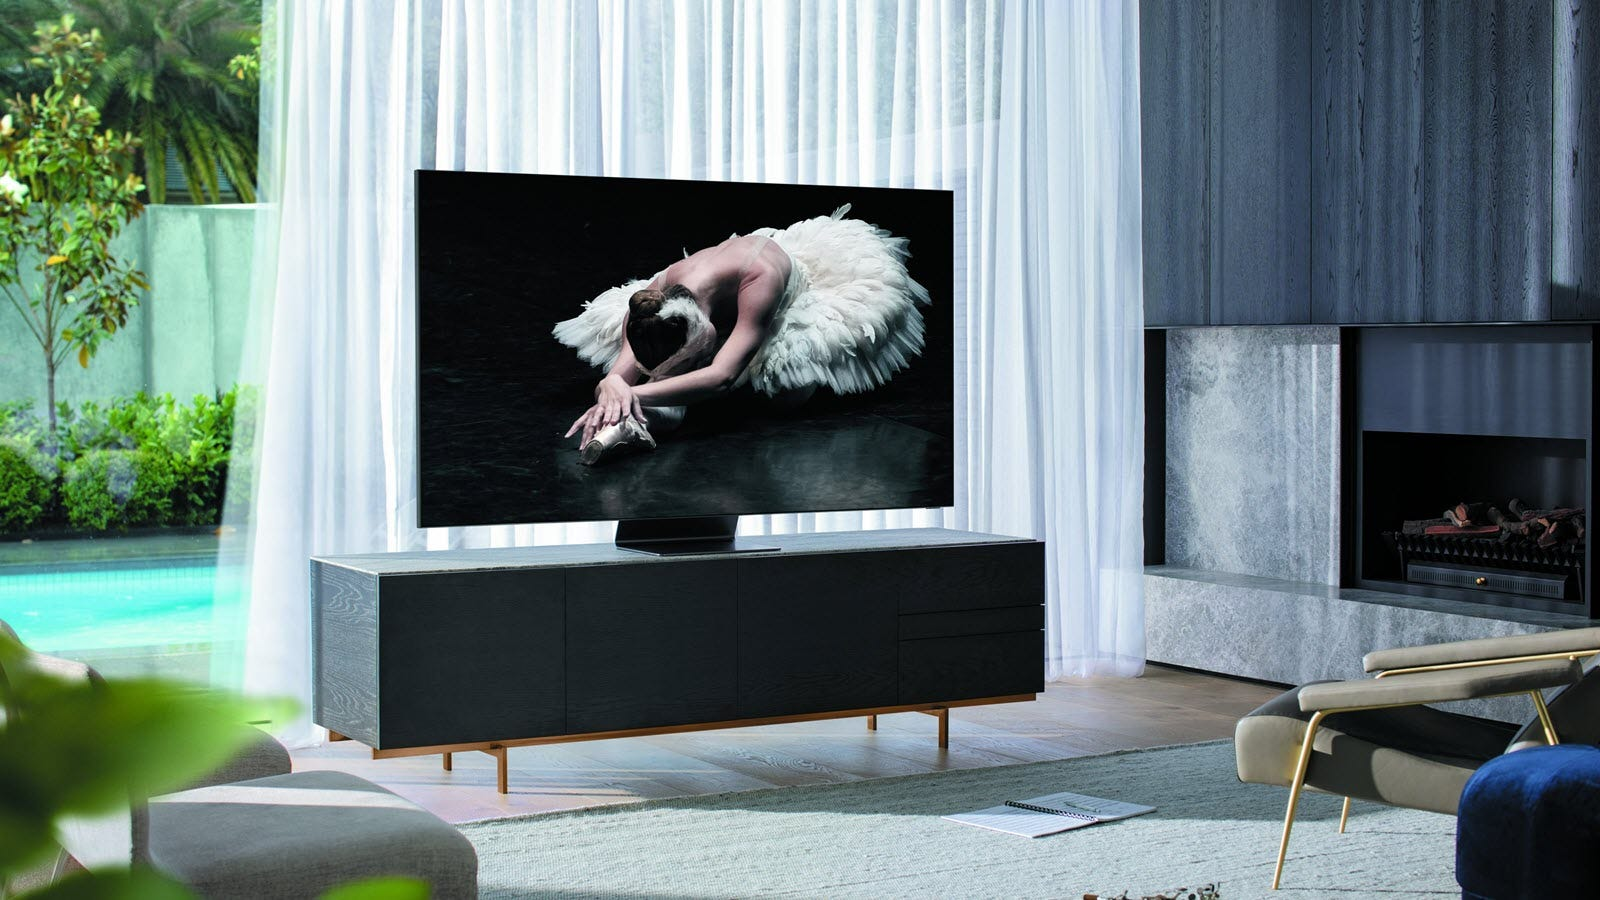 A smaller 8K Q800T on a stand, displaying a ballerina.